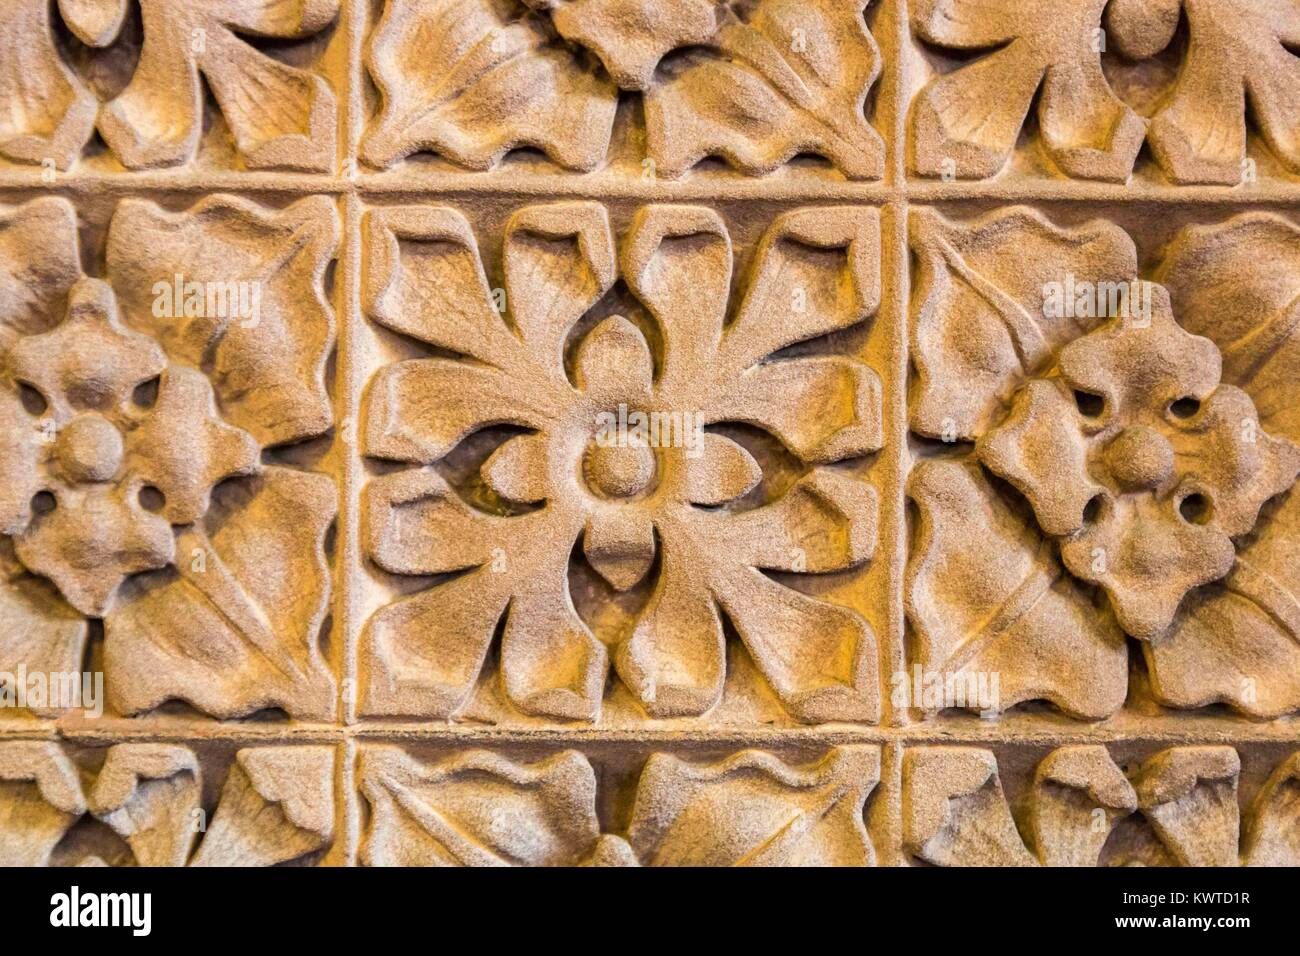 Wall or screen of carved stone depicting flower motif patterns - Stock Image